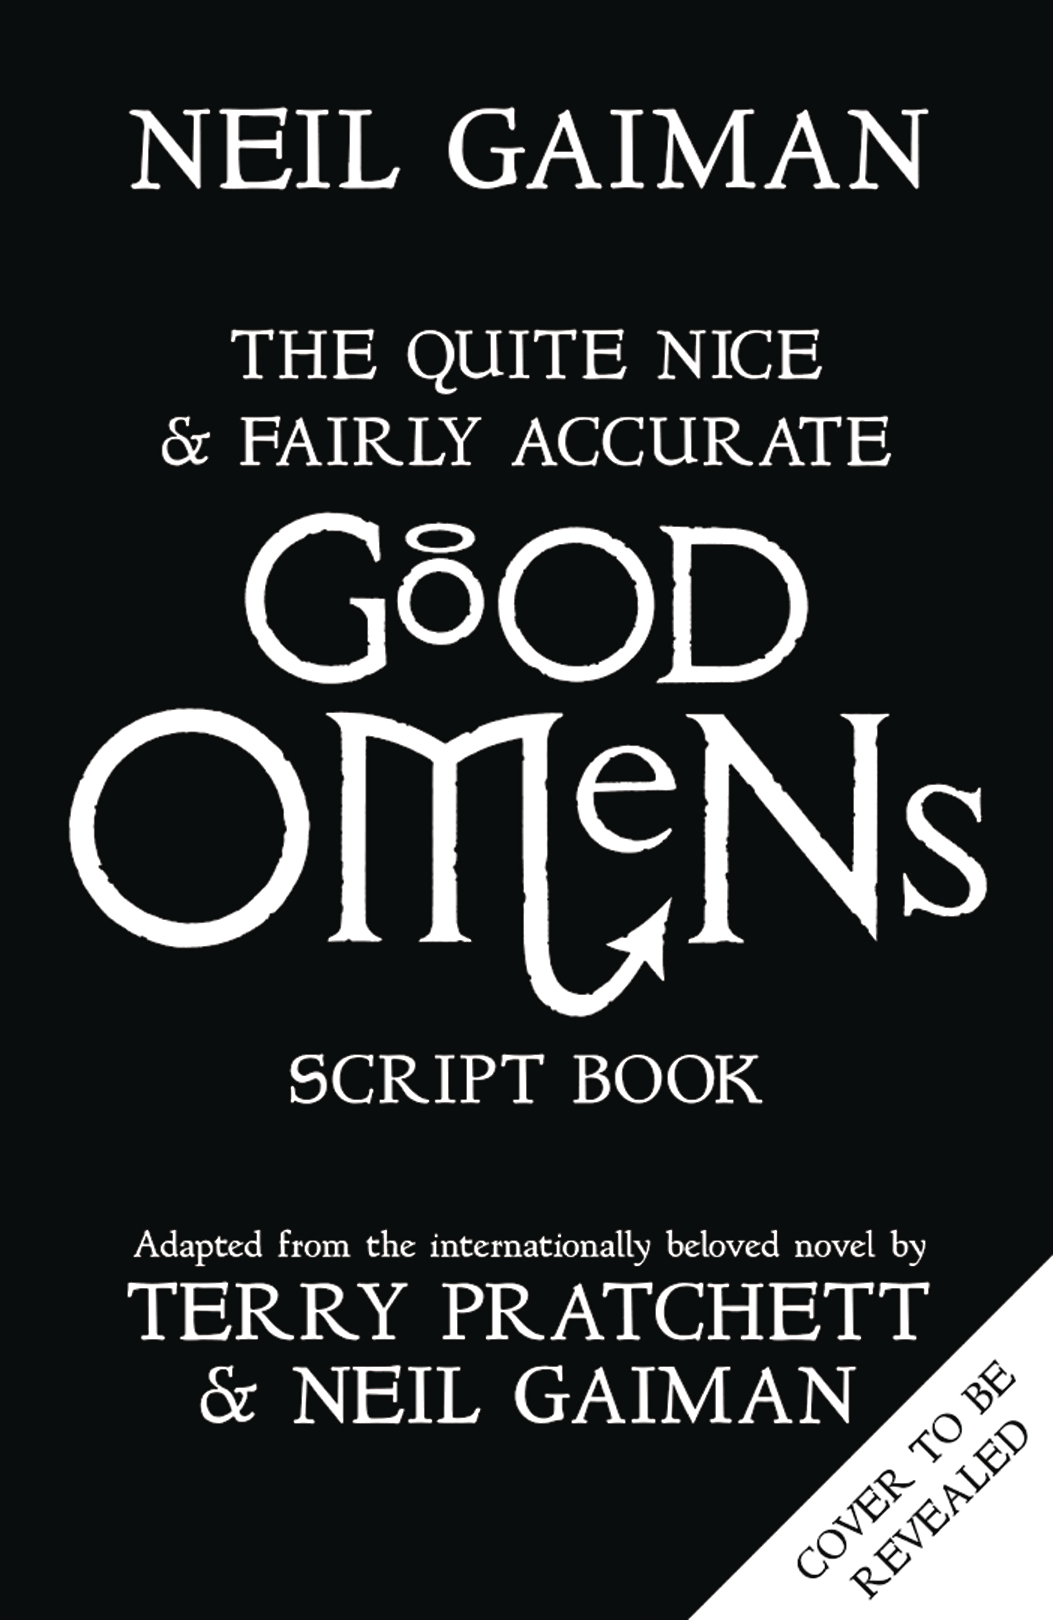 QUITE NICE & FAIRLY ACCURATE GOOD OMENS SCRIPT BOOK